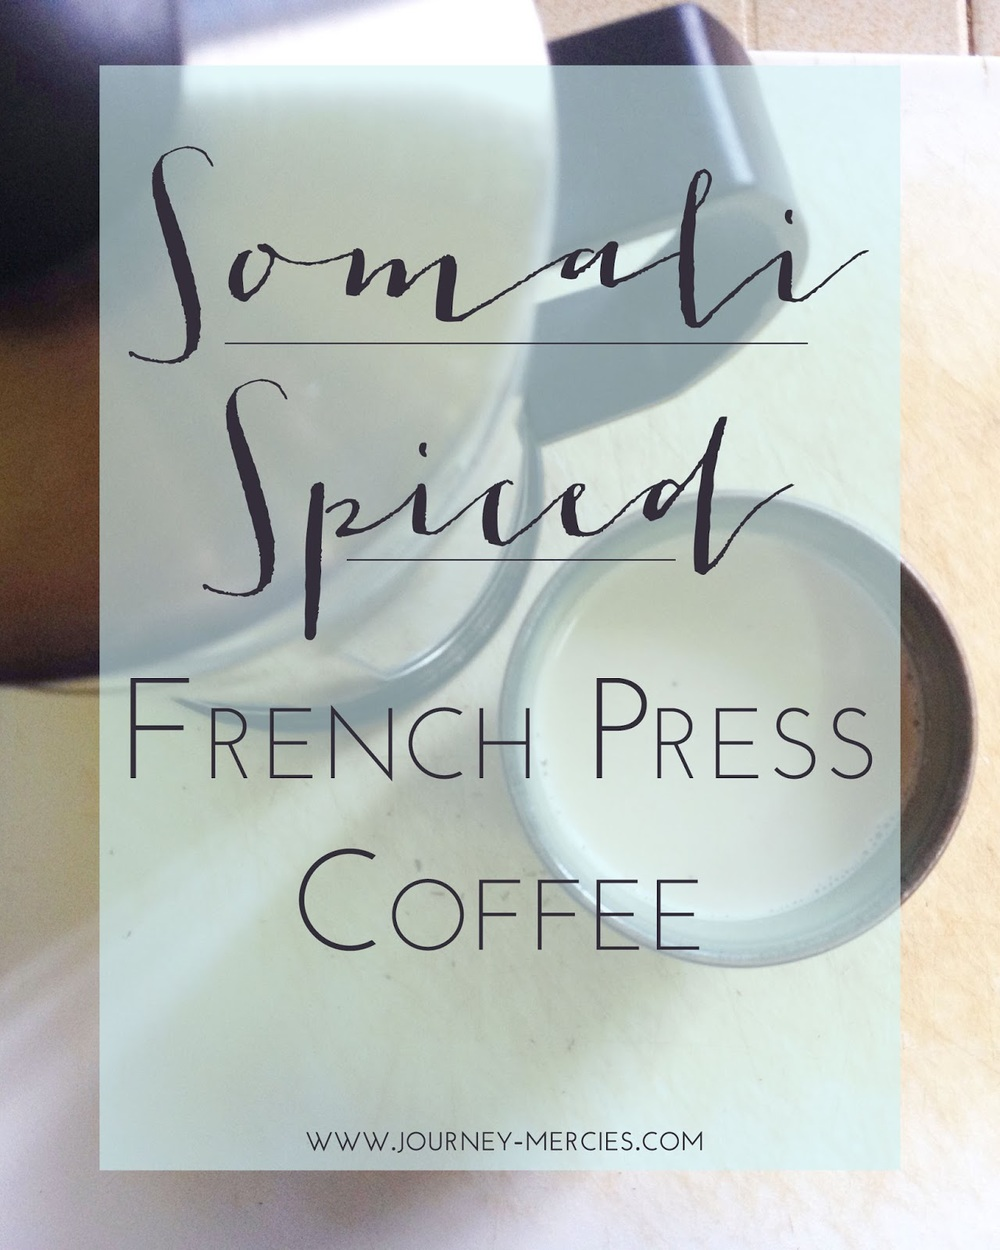 Somali Spiced French Press Coffee - a recipe for a delicious mix of coffee steeped in milk with cardamom, cinnamon, and sugar